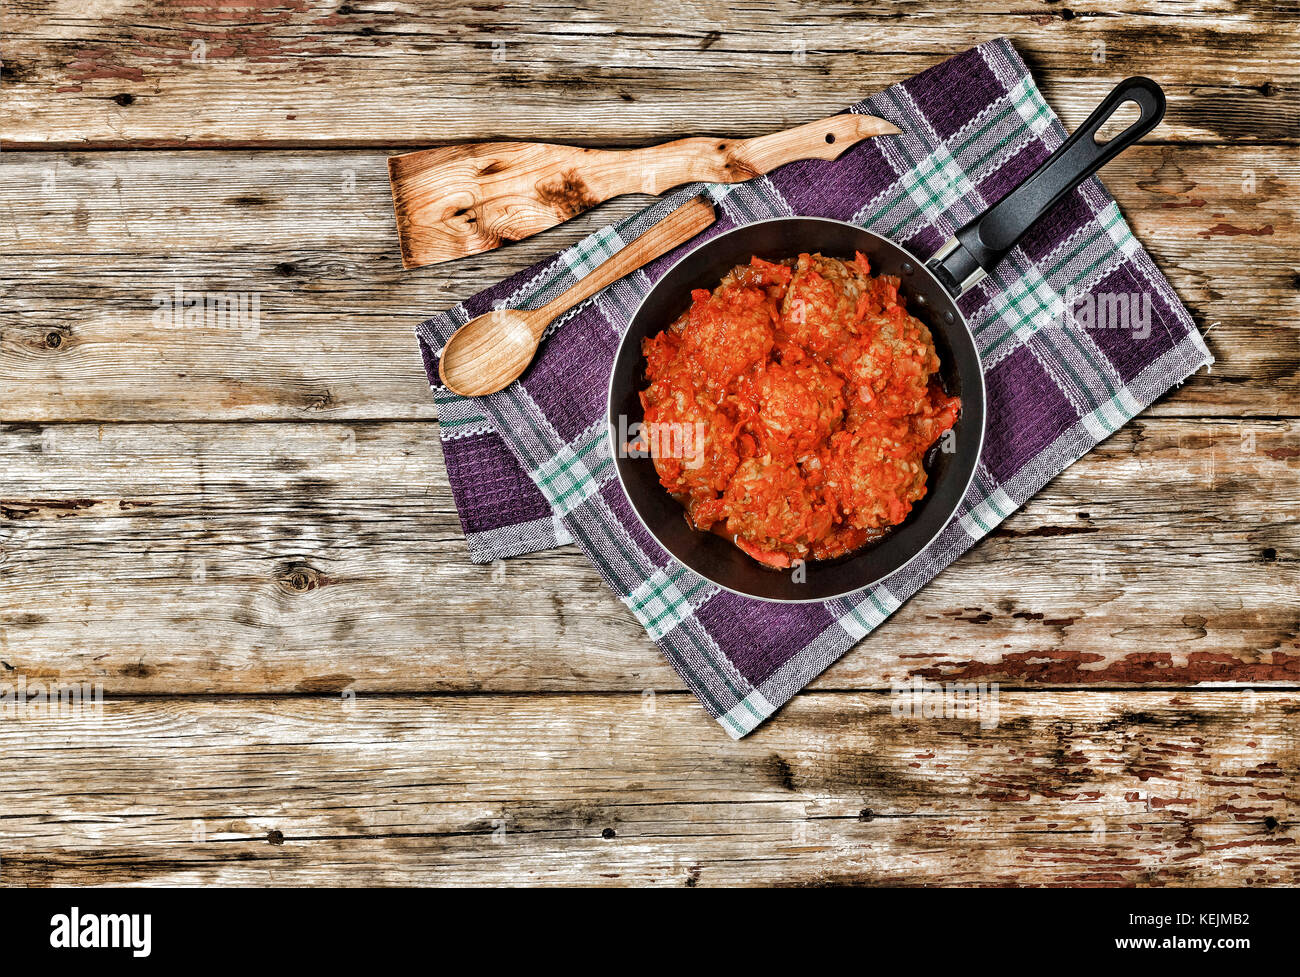 how to cook meatballs in frying pan